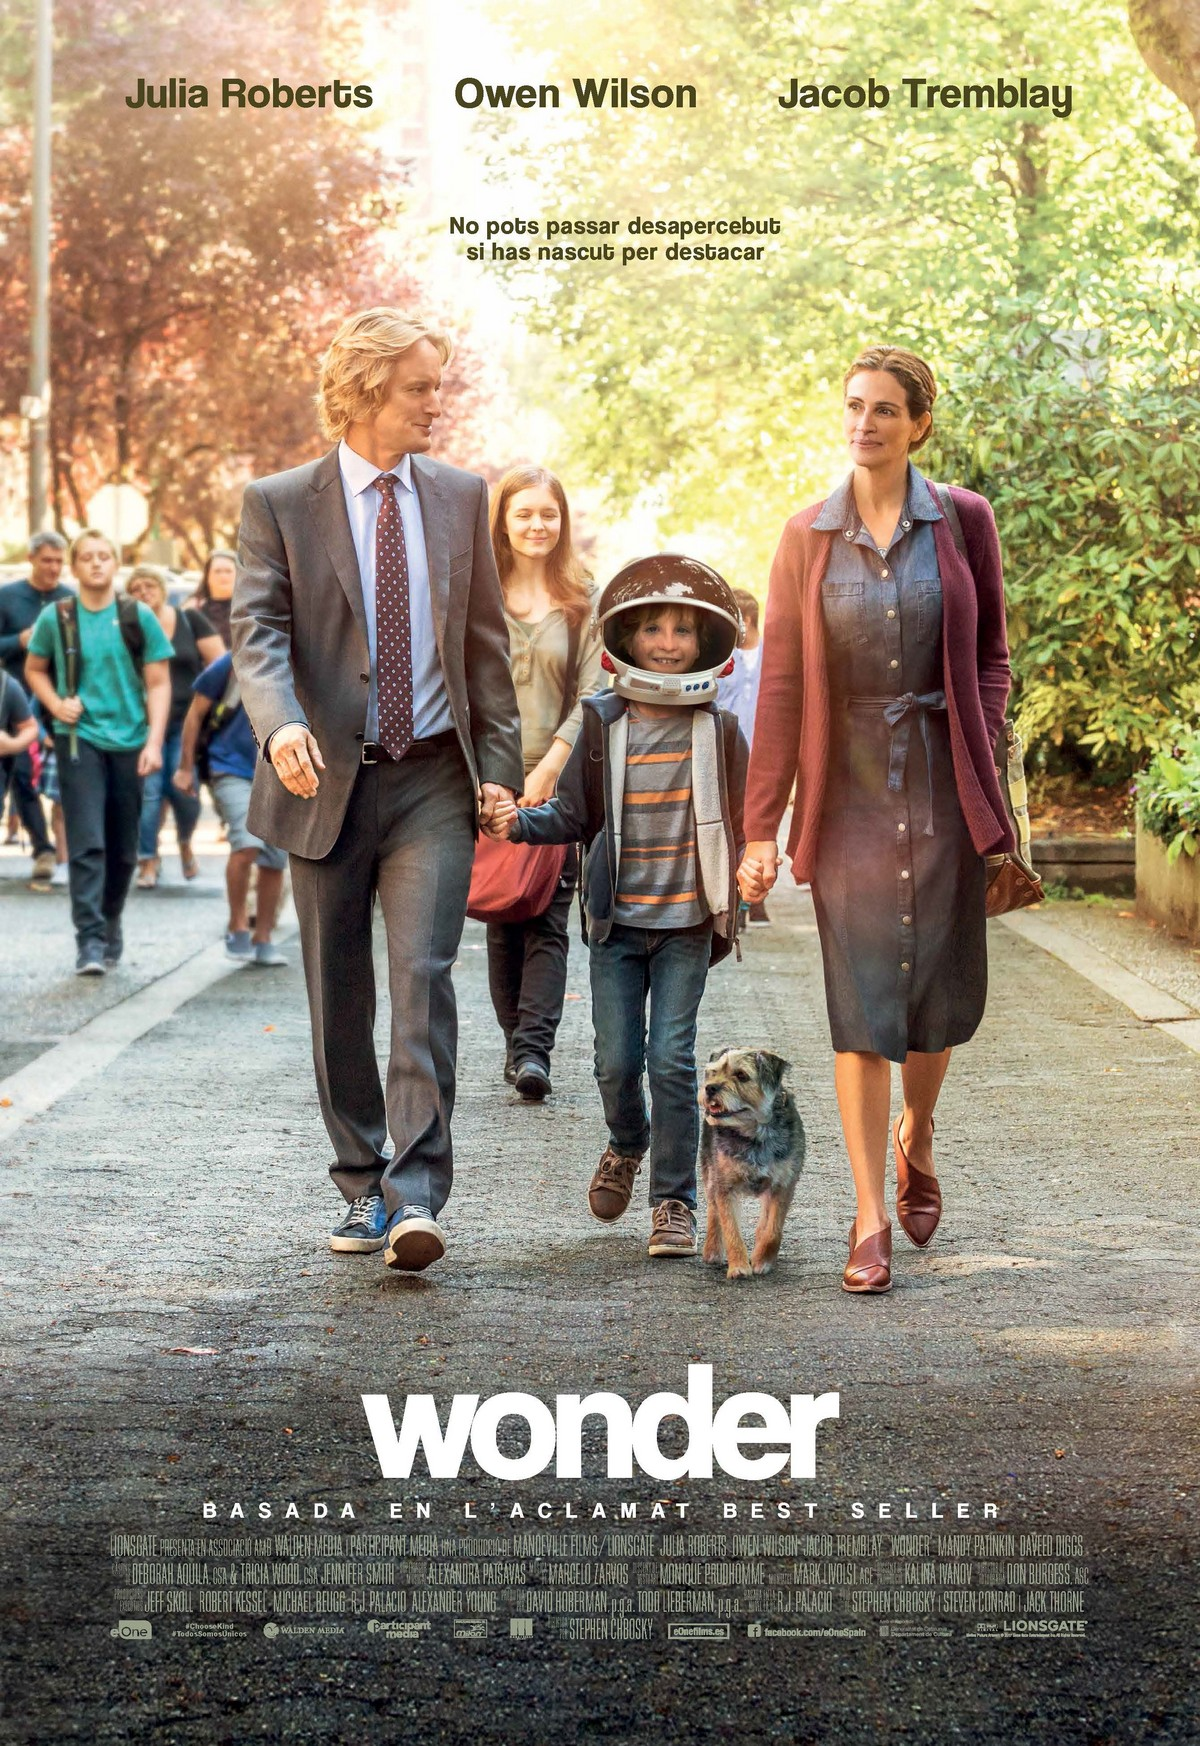 Wanderlust Tips Magazine | New movies to see in theatres in January 2018